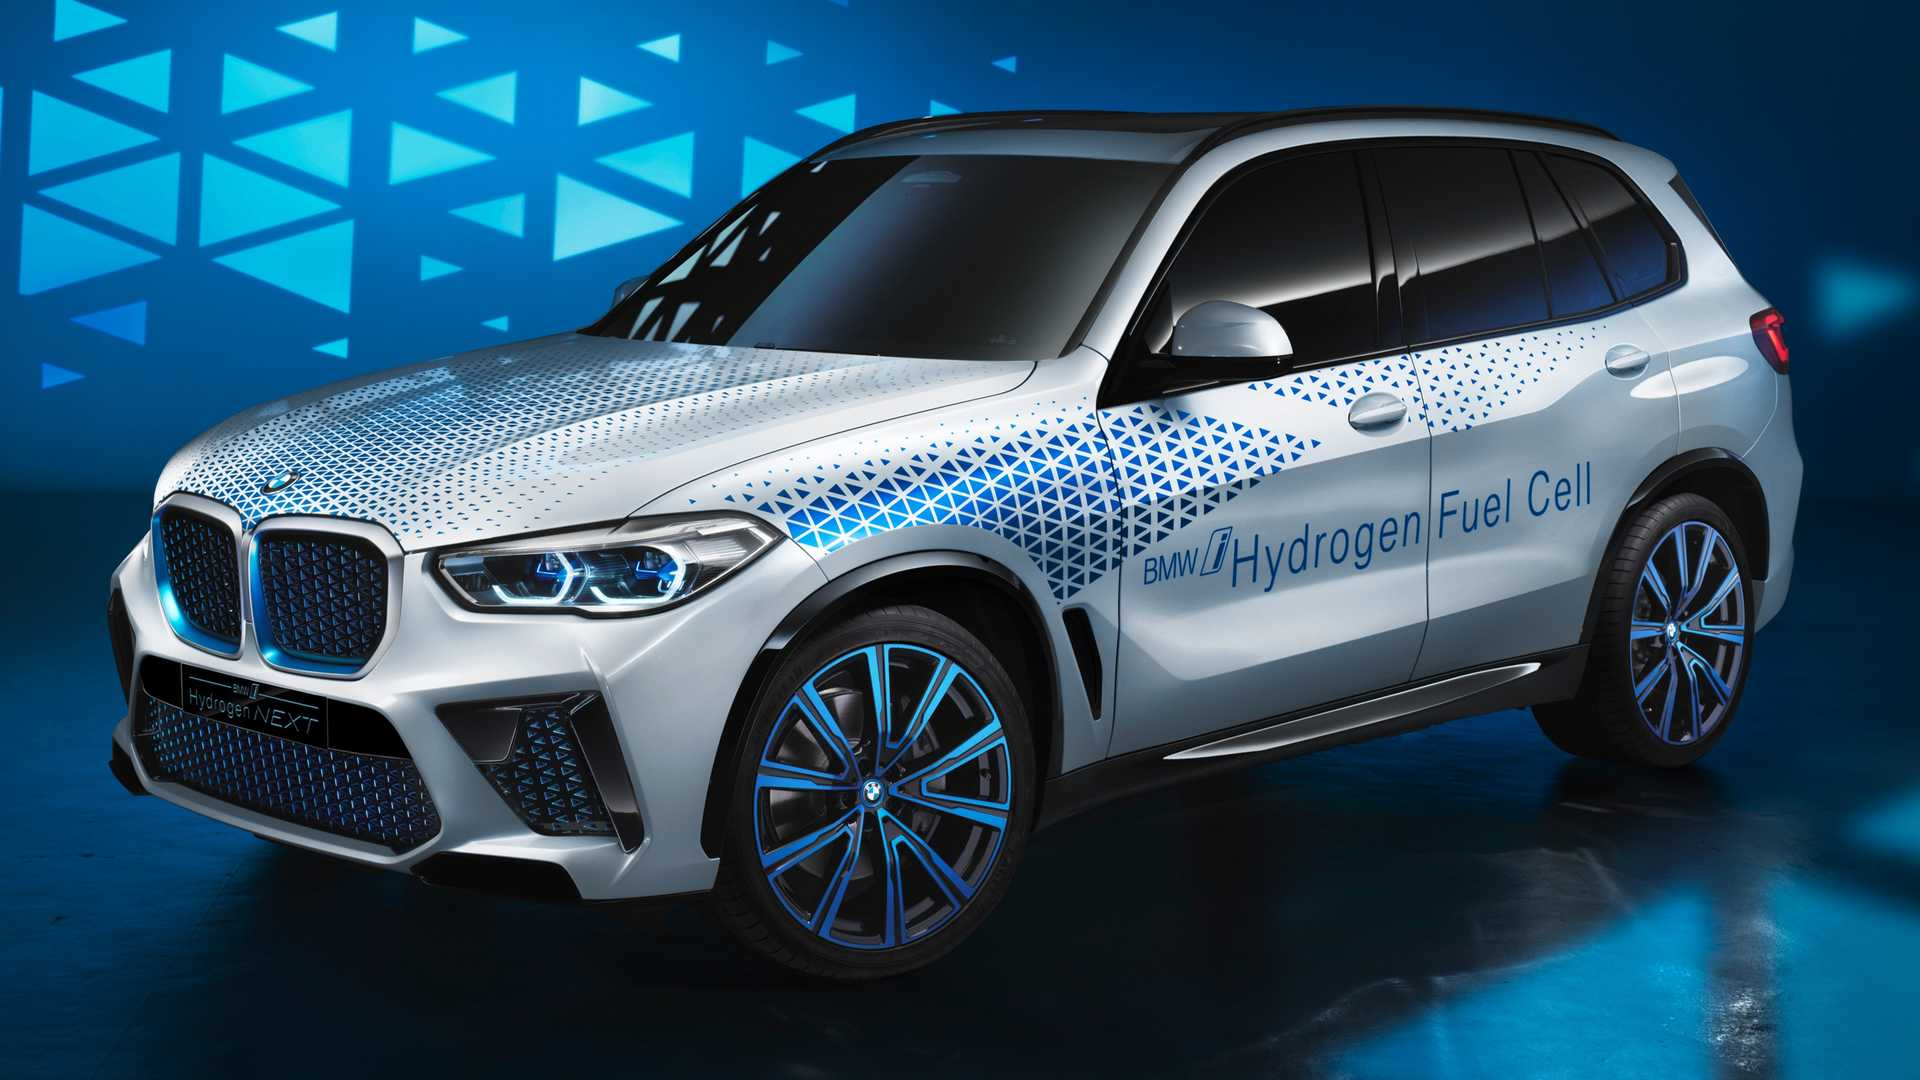 2022 Bmw X5 Hydrogen Version To Produce 369 Hp With Toyota S Help